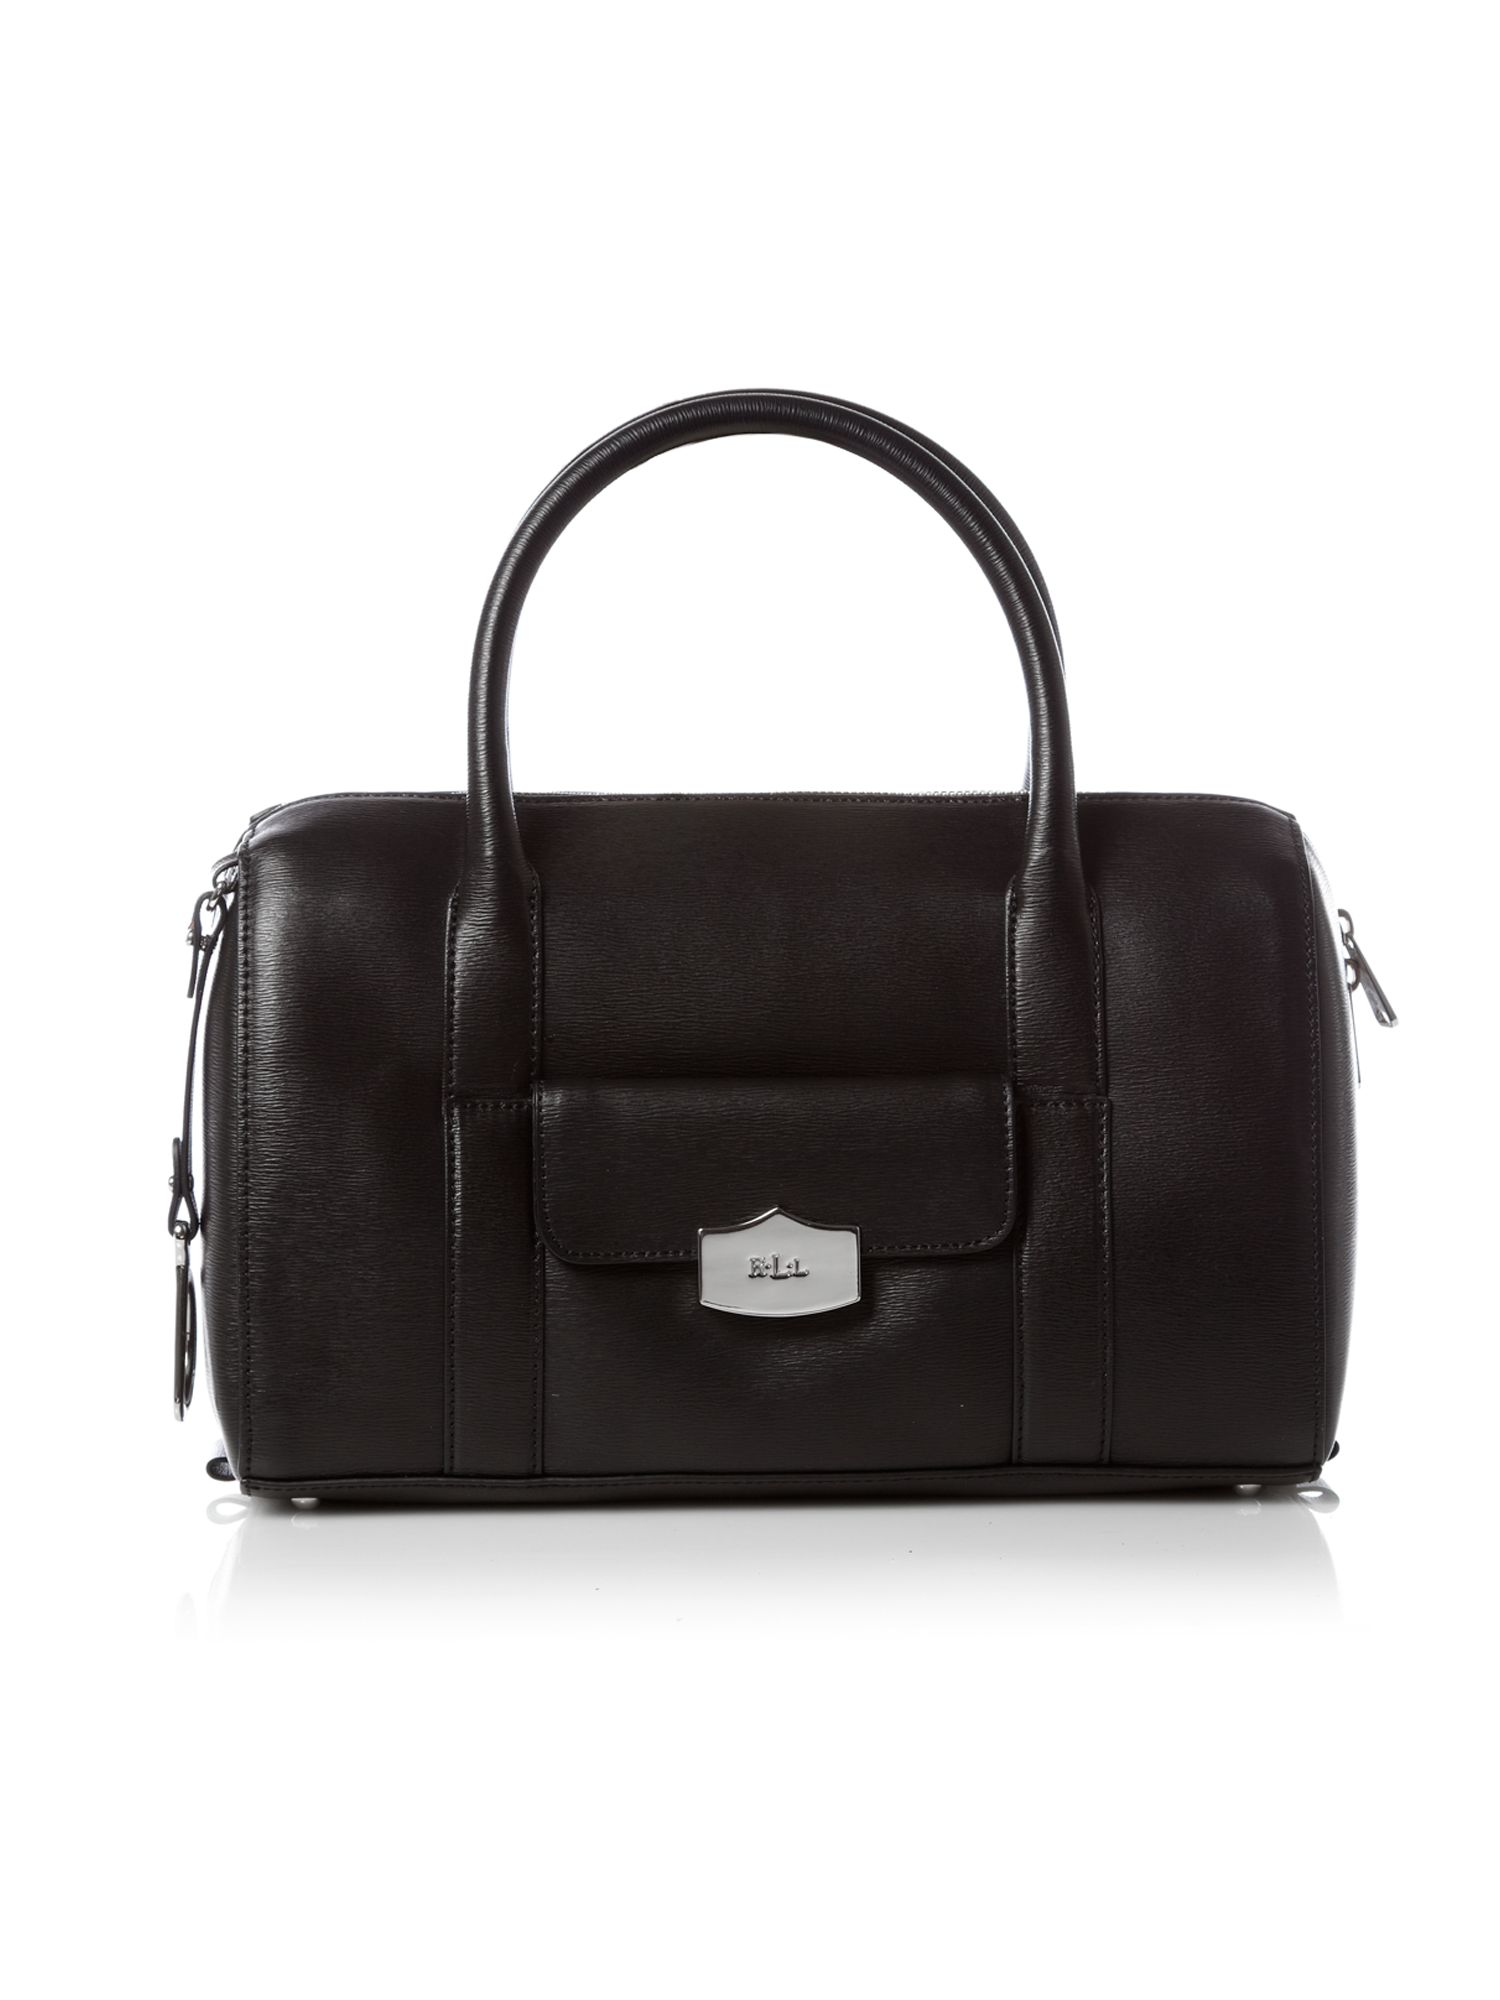 When it comes to handbags and accessories, Macy's is your one-stop shop for a wide selection of the brands and fashions you love. Macy's is now also carrying Louis Vuitton in select stores. Looking for huge savings? Shop our Black Friday Deals, Black Friday Handbags Deals, Cyber Monday Deals and Christmas Gift Guide!